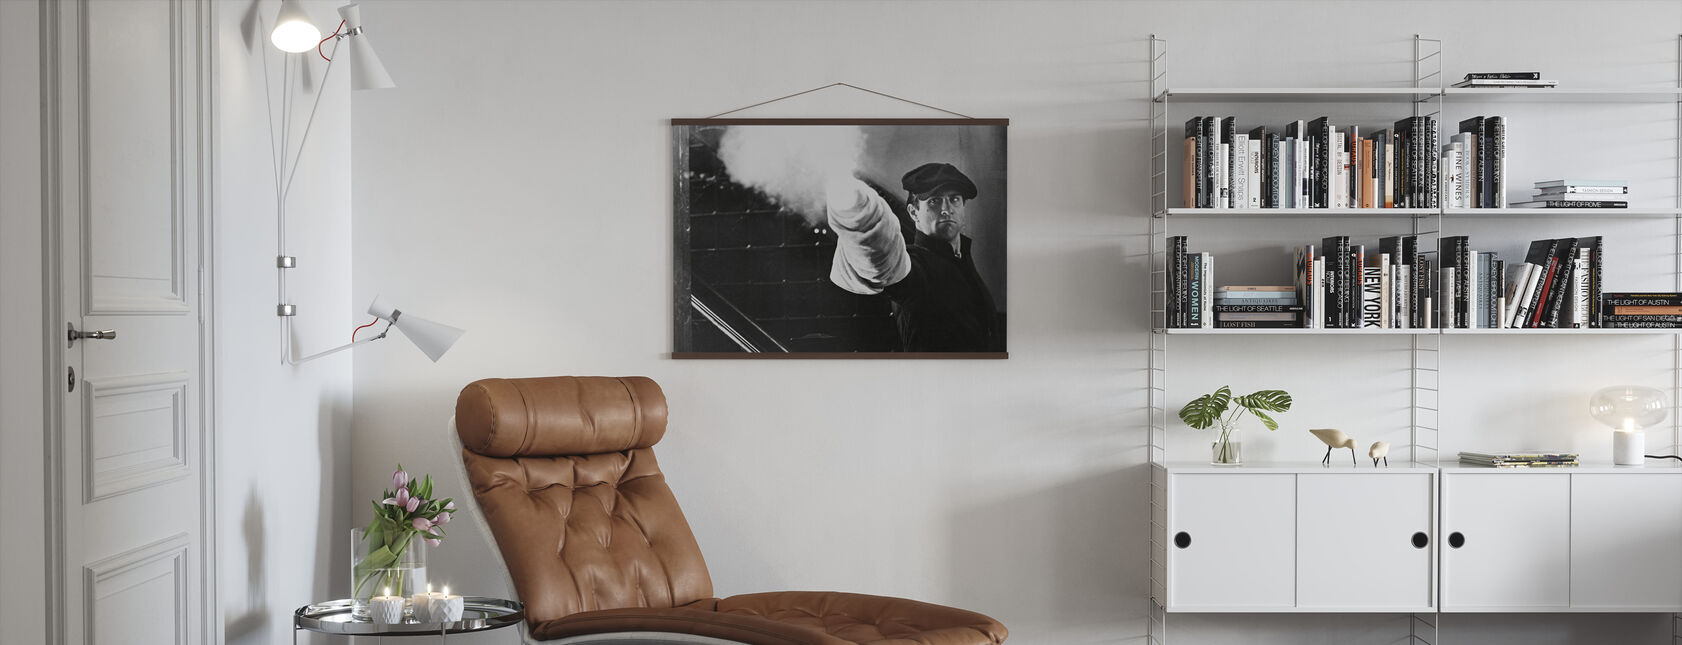 Robert De Niro in the Godfather Part II - Poster - Living Room